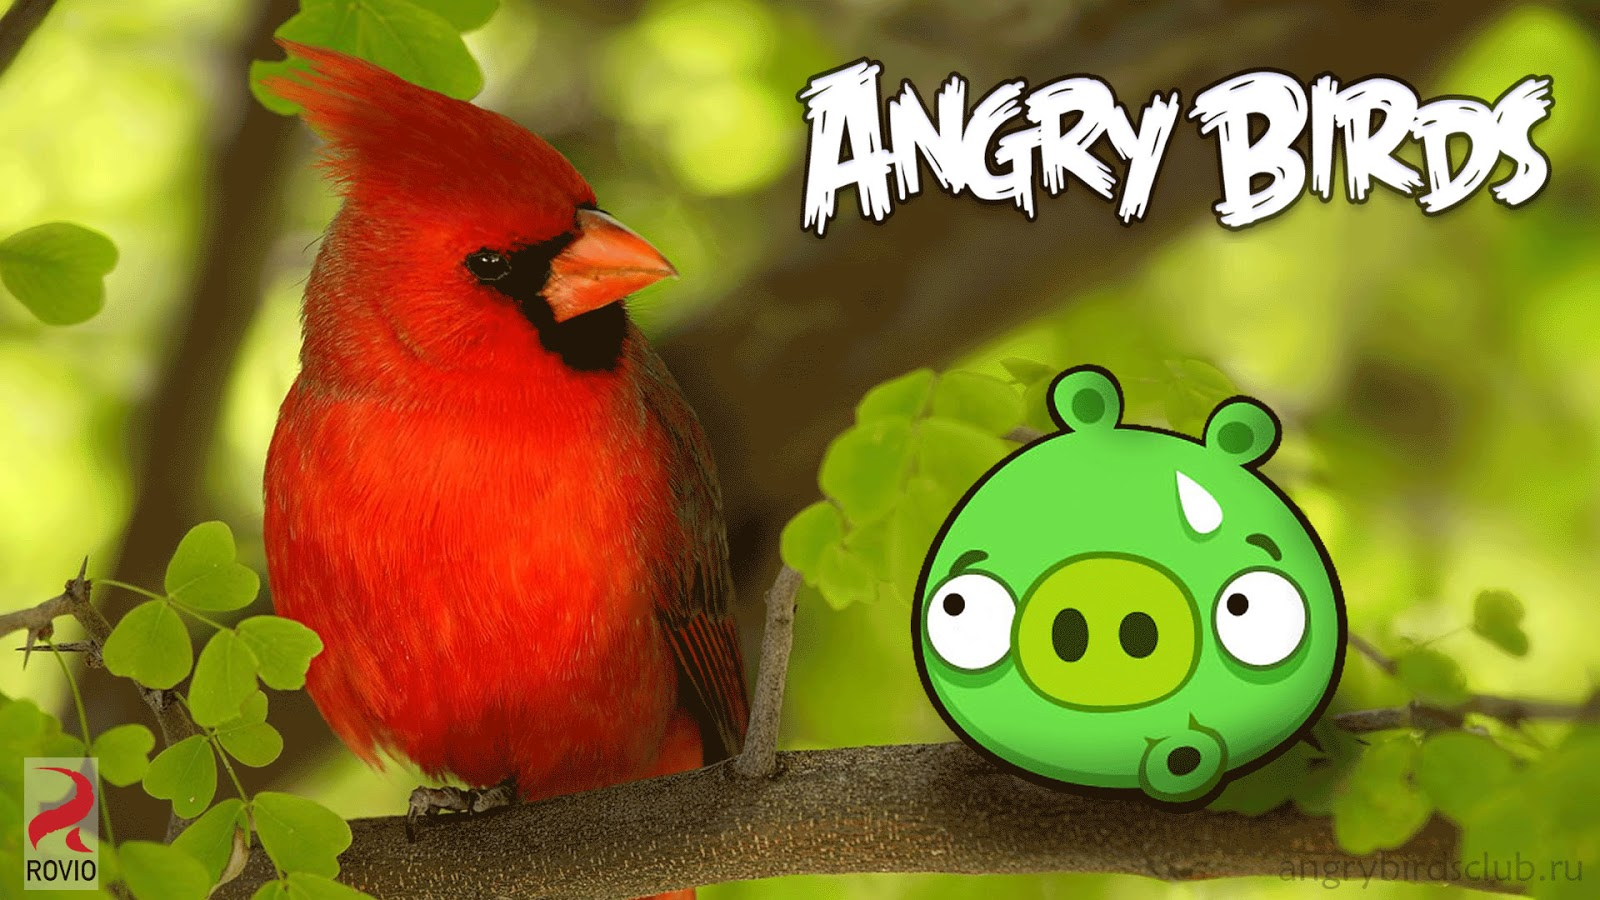 Angrybirds Francescanatale 05: 3D HD WALLPAPERS: ANGRY BIRDS WALLPAPERS